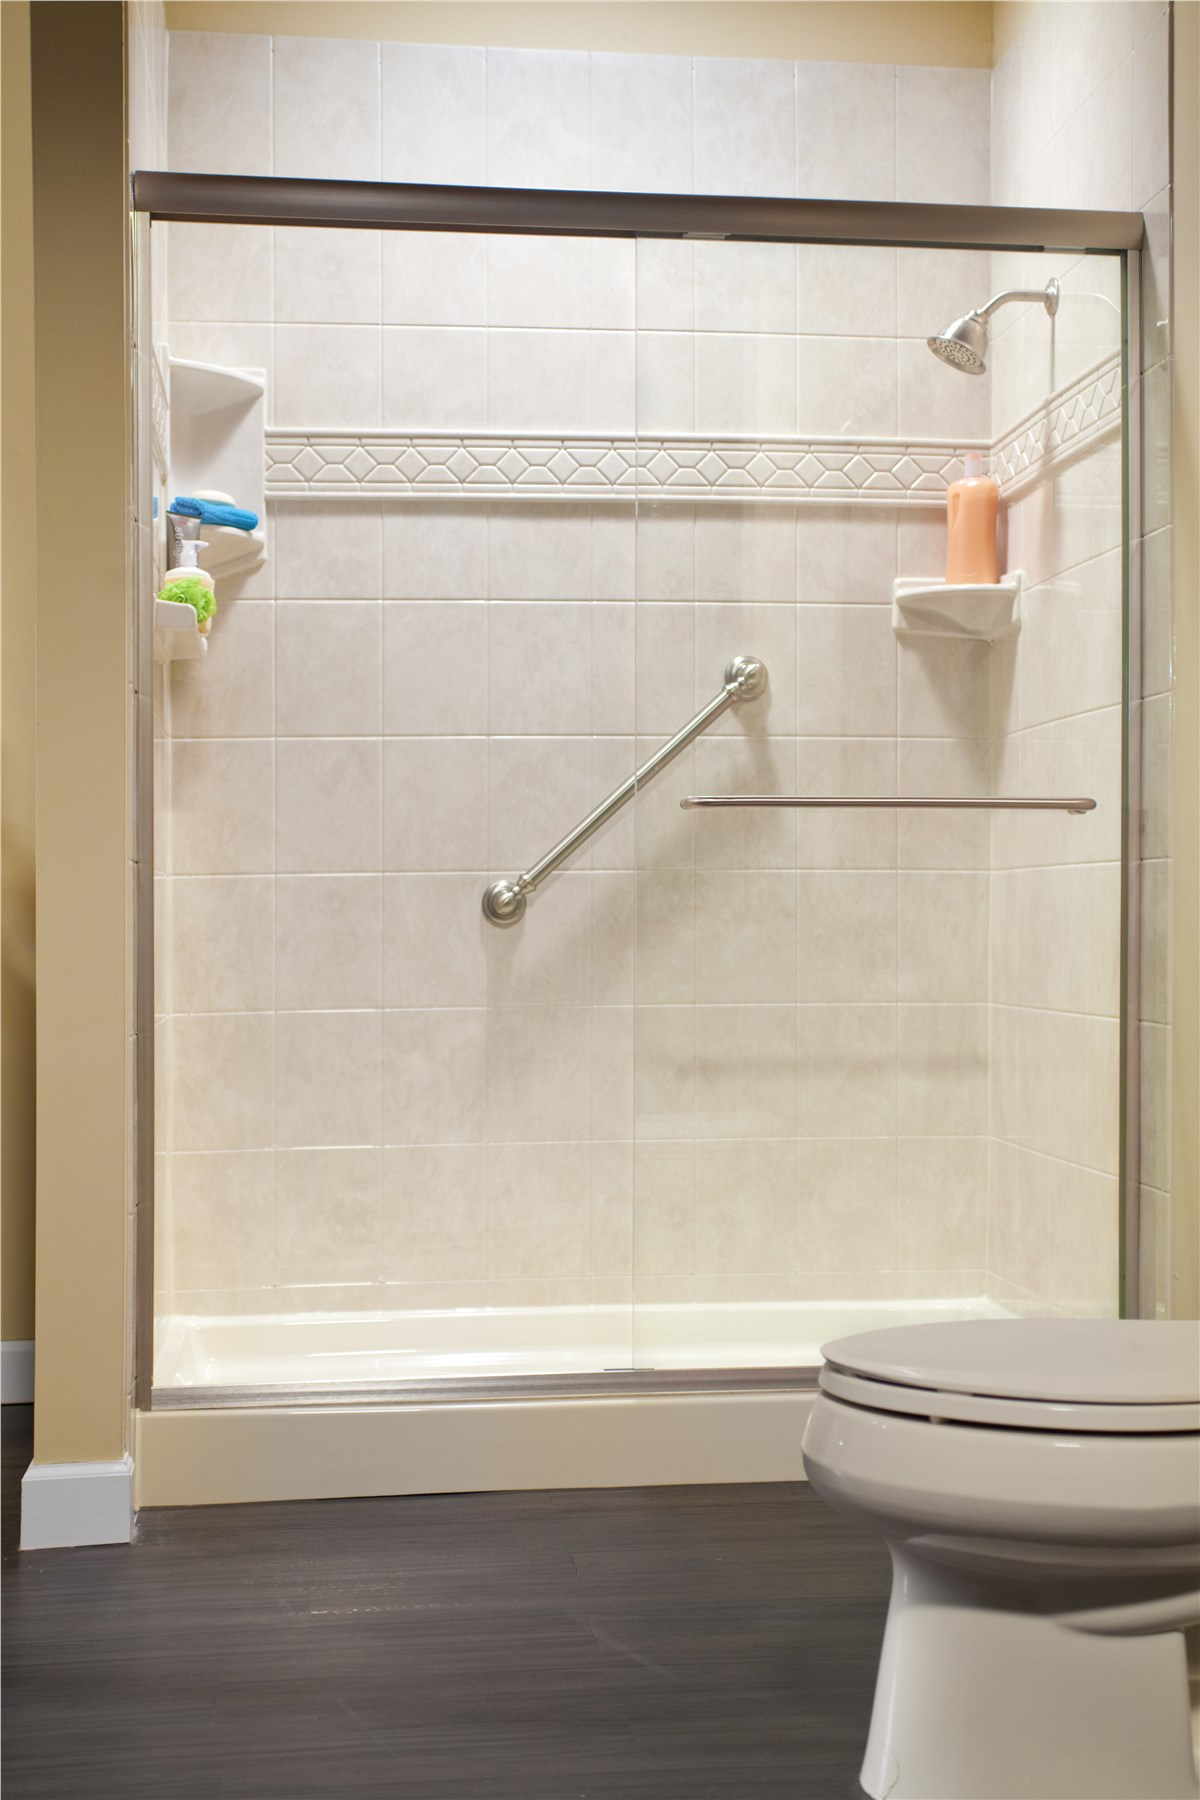 conversions services by lampert shower in renovations convert toronto to tub